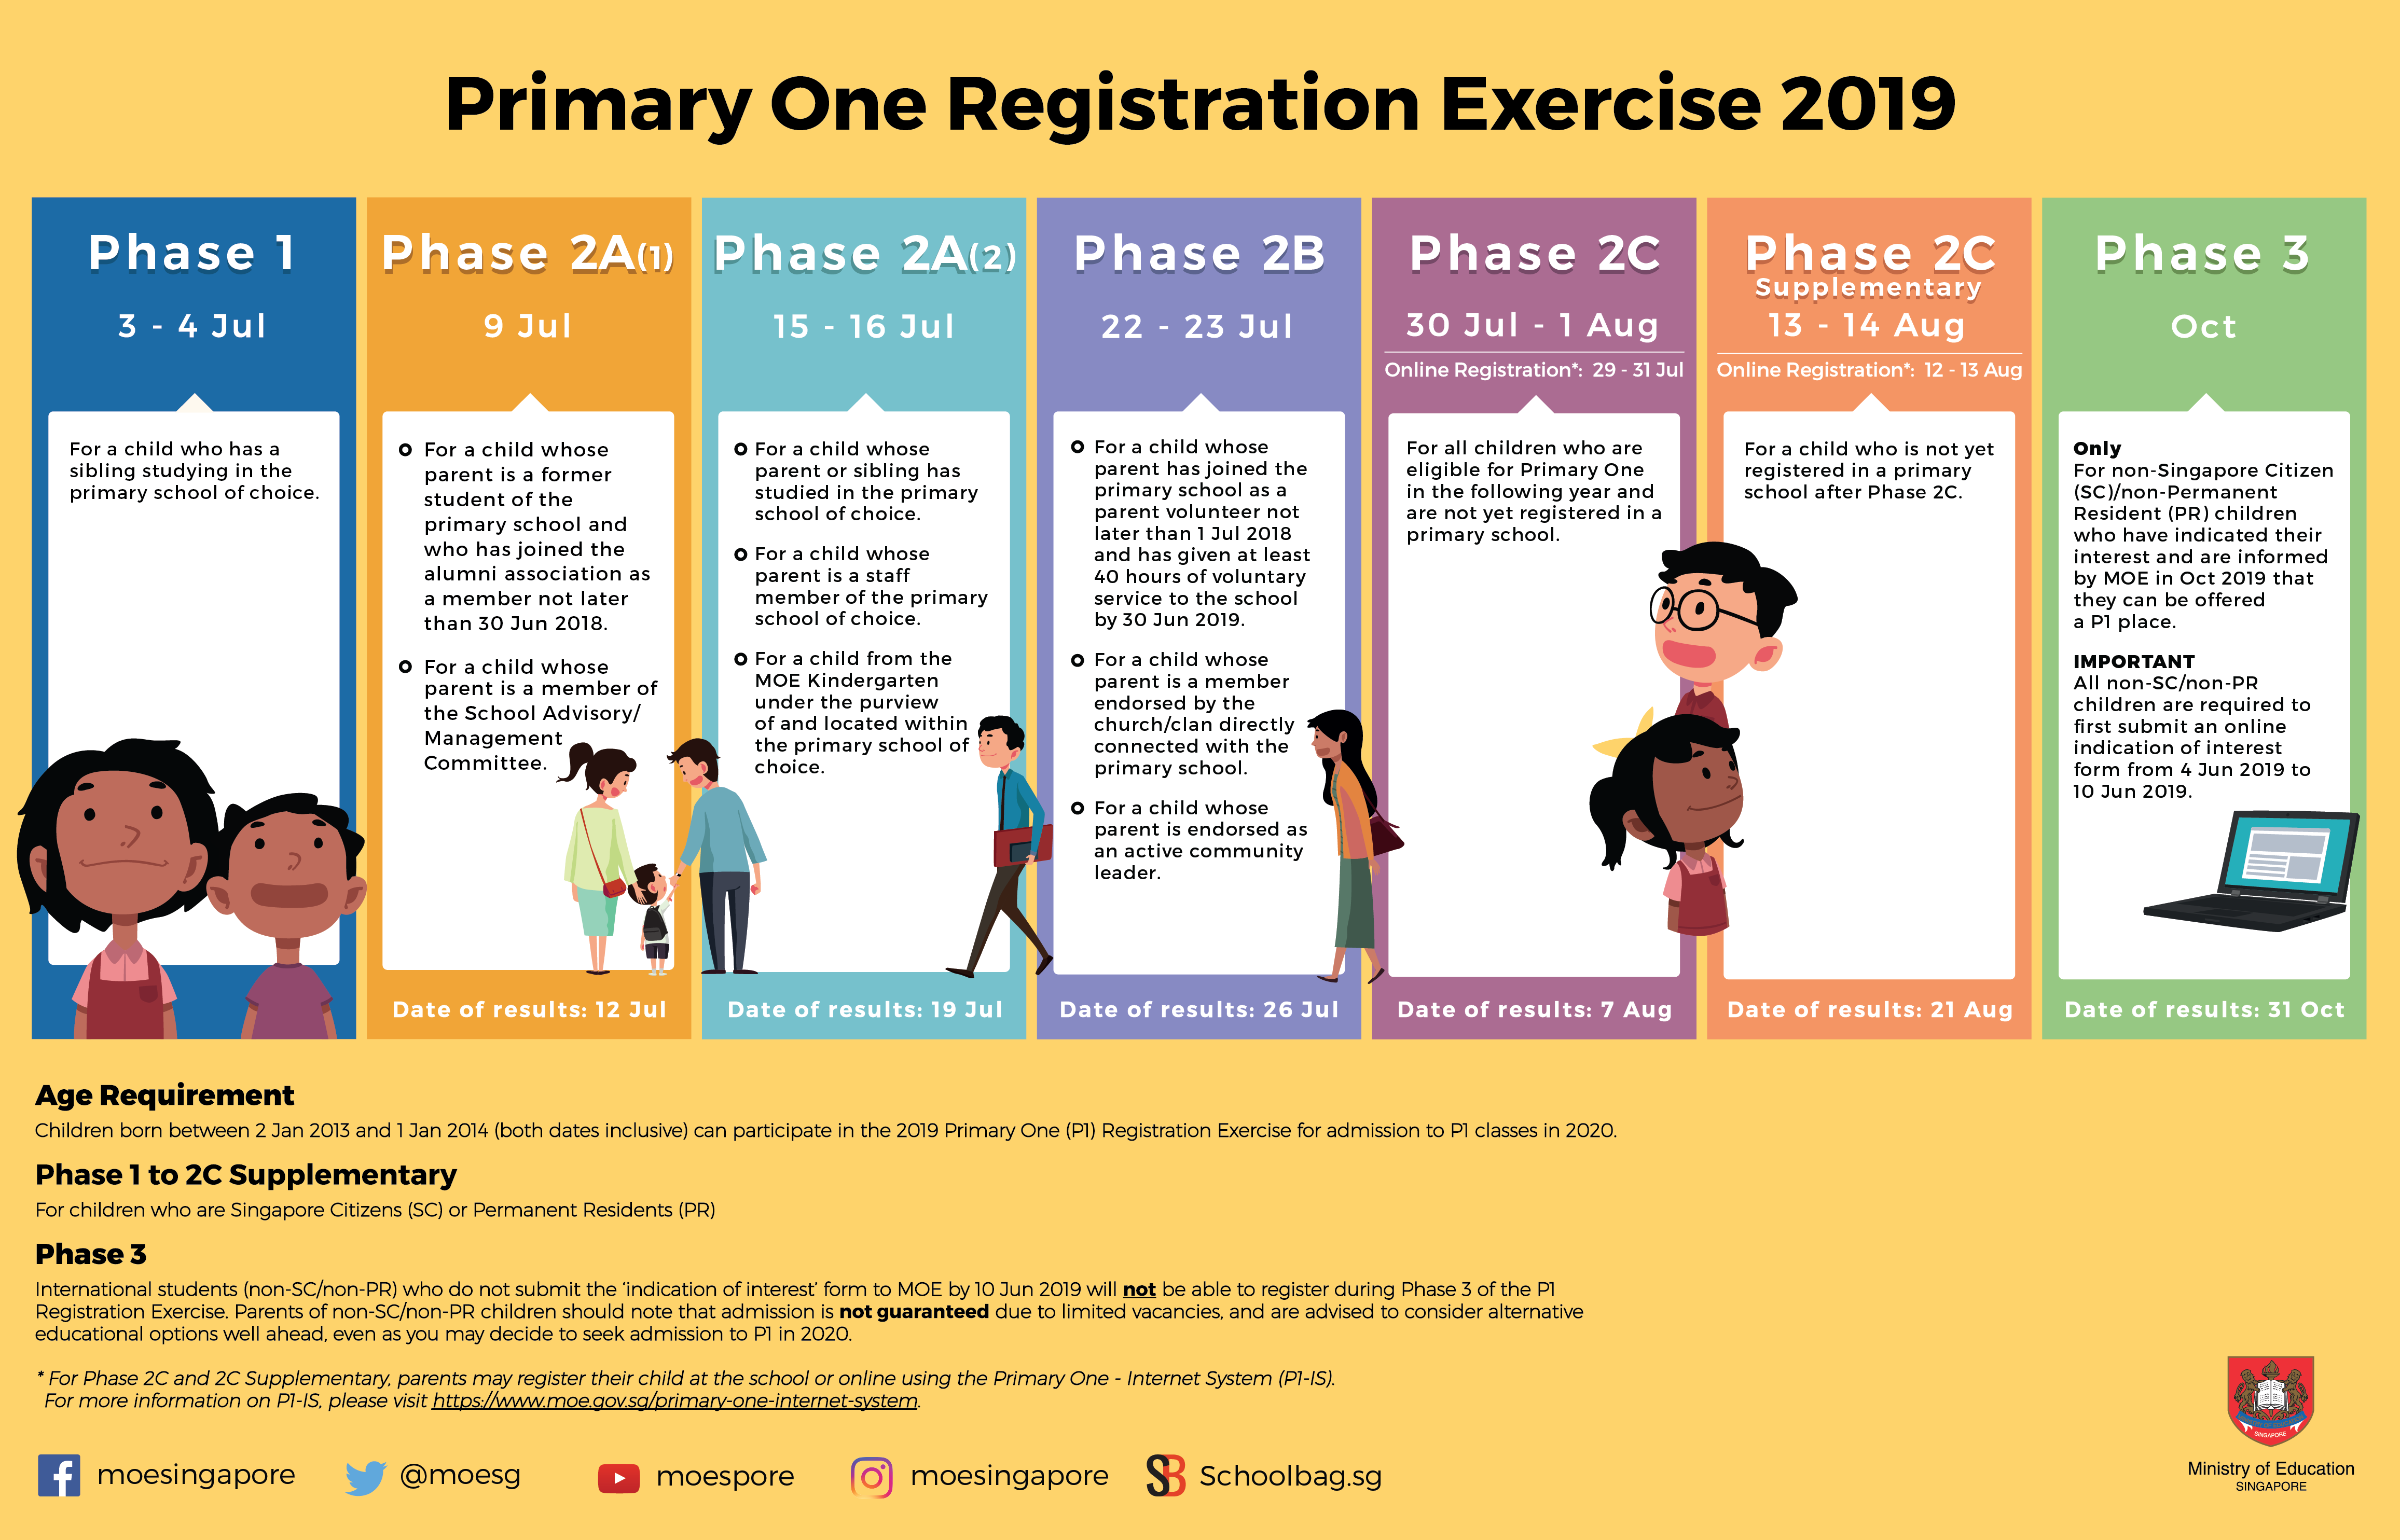 P1 Registration Ex 2019 infographic.png